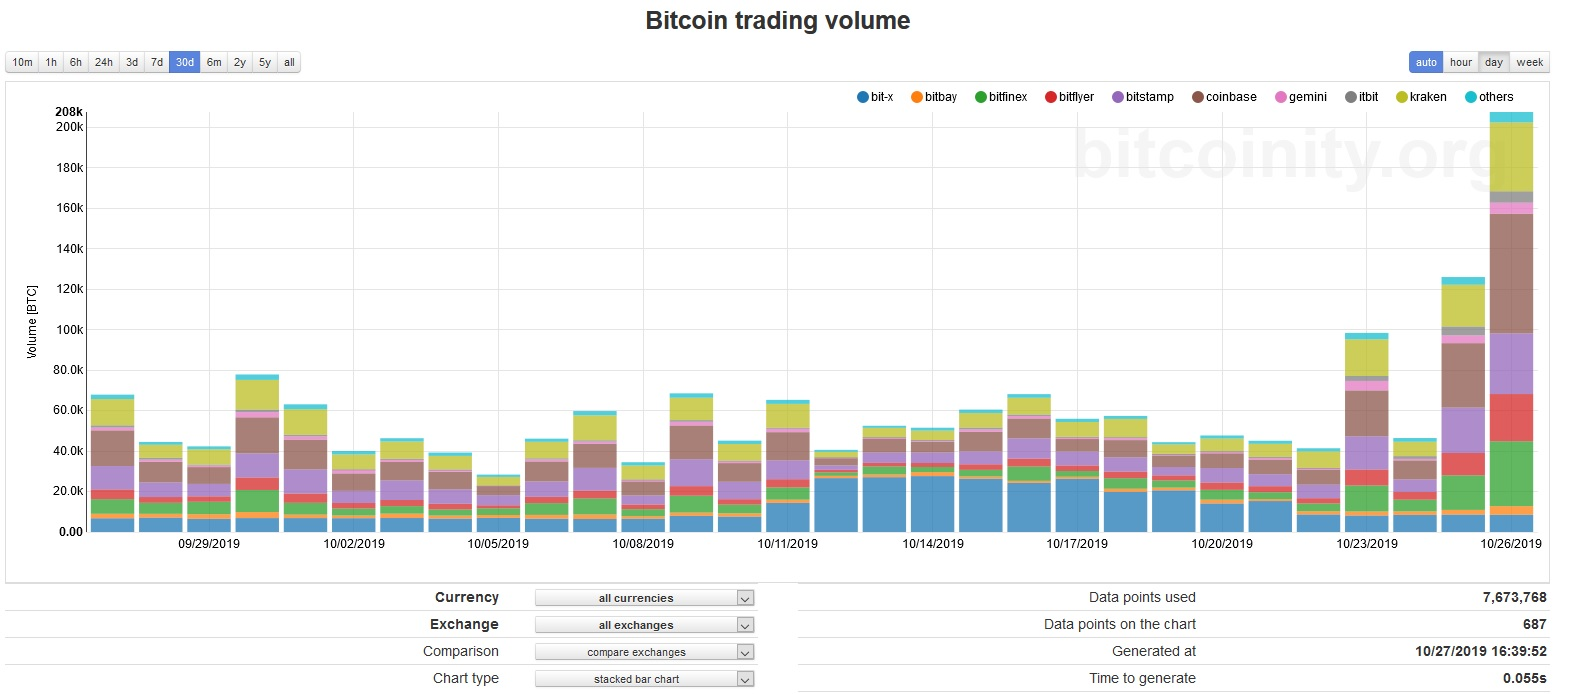 Bitcoin volume data